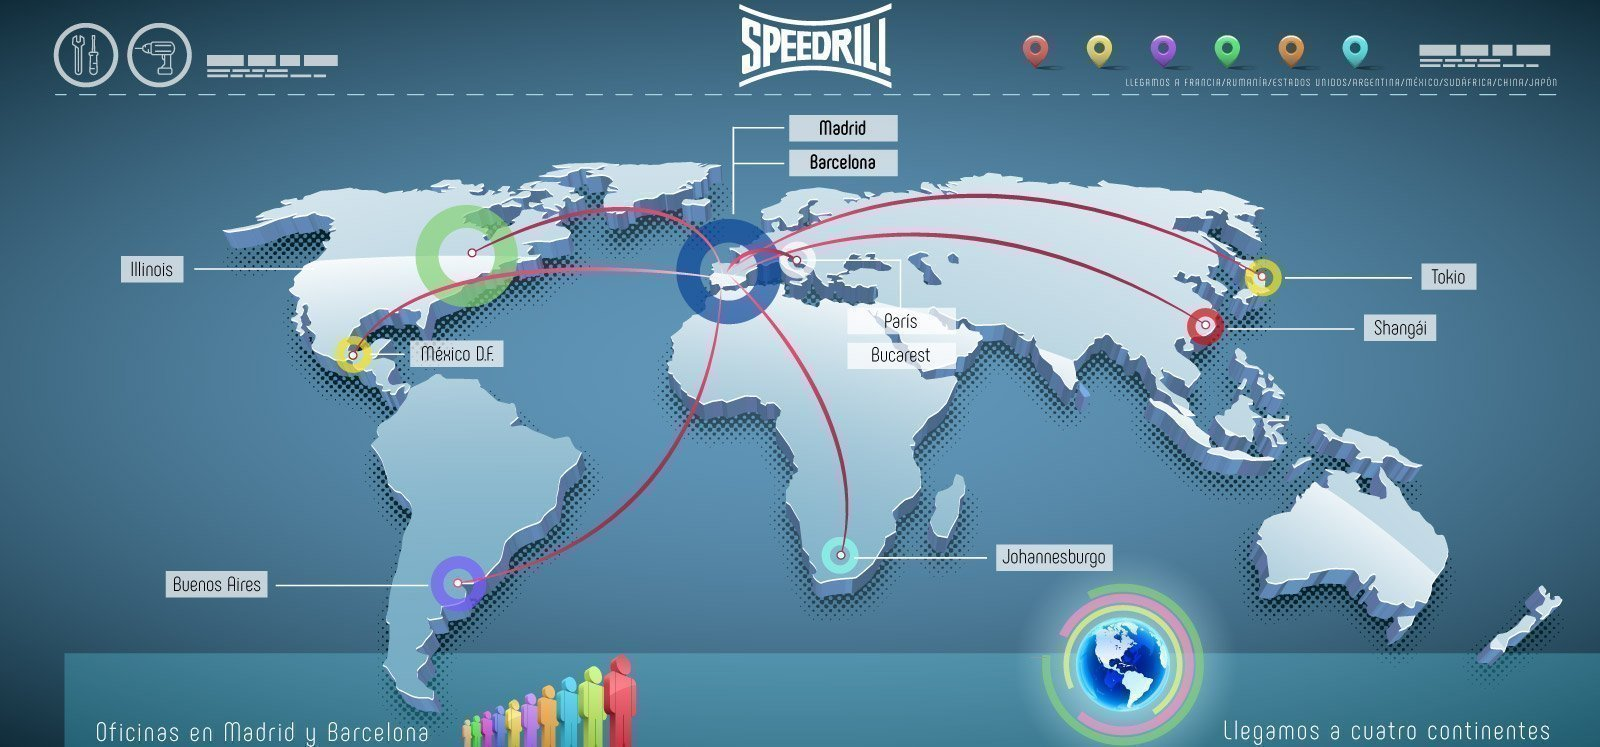 Speedrill distribución